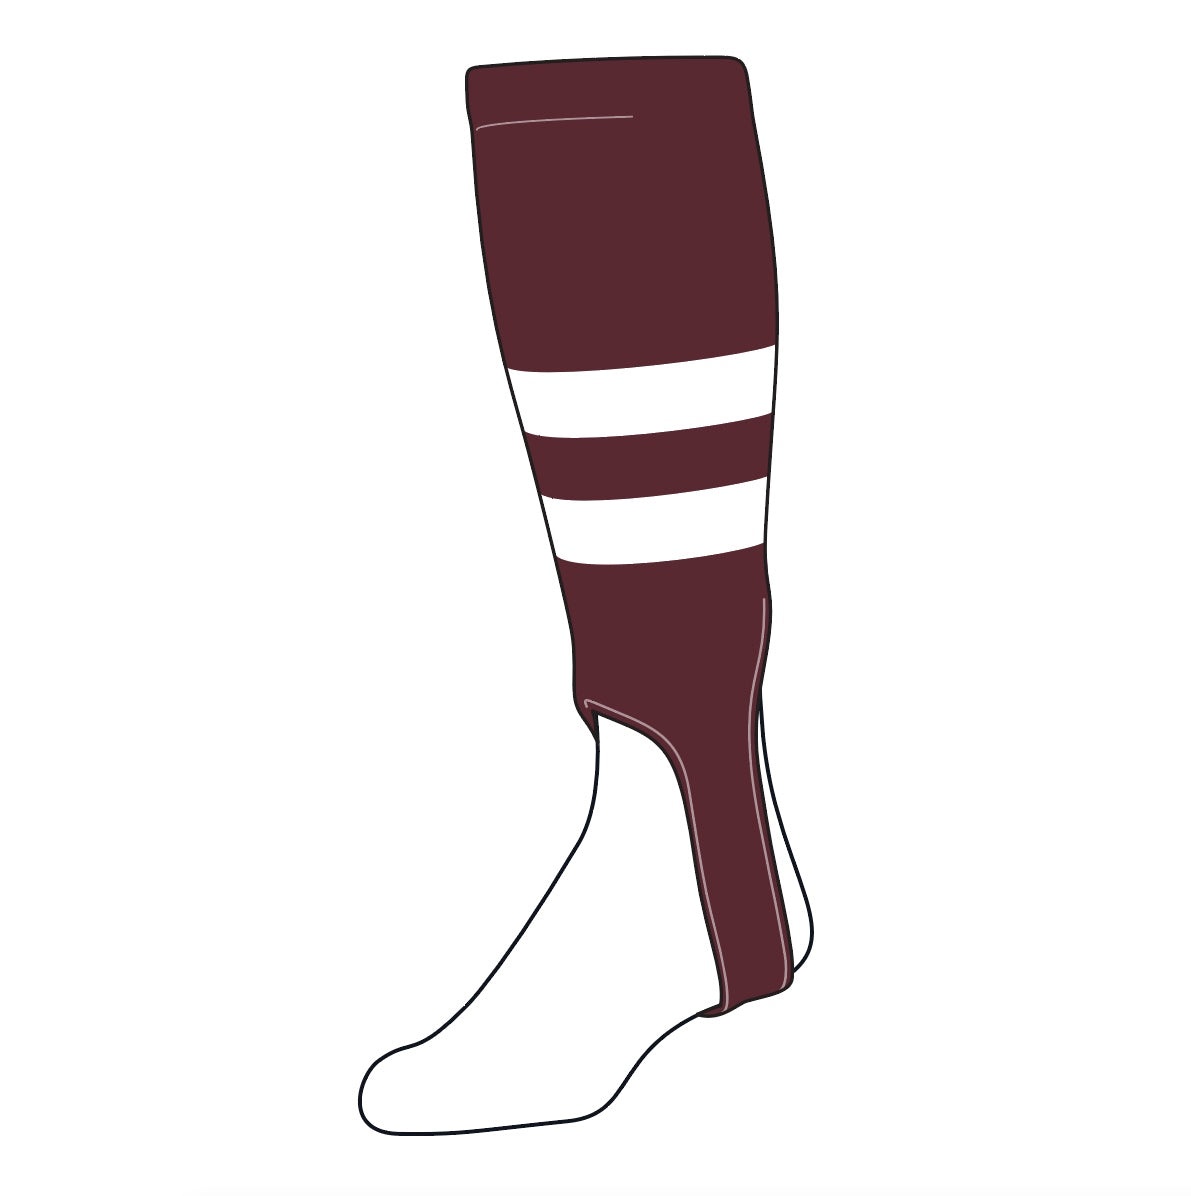 TCK Baseball Stirrups Medium (200G, 5in) Maroon, White